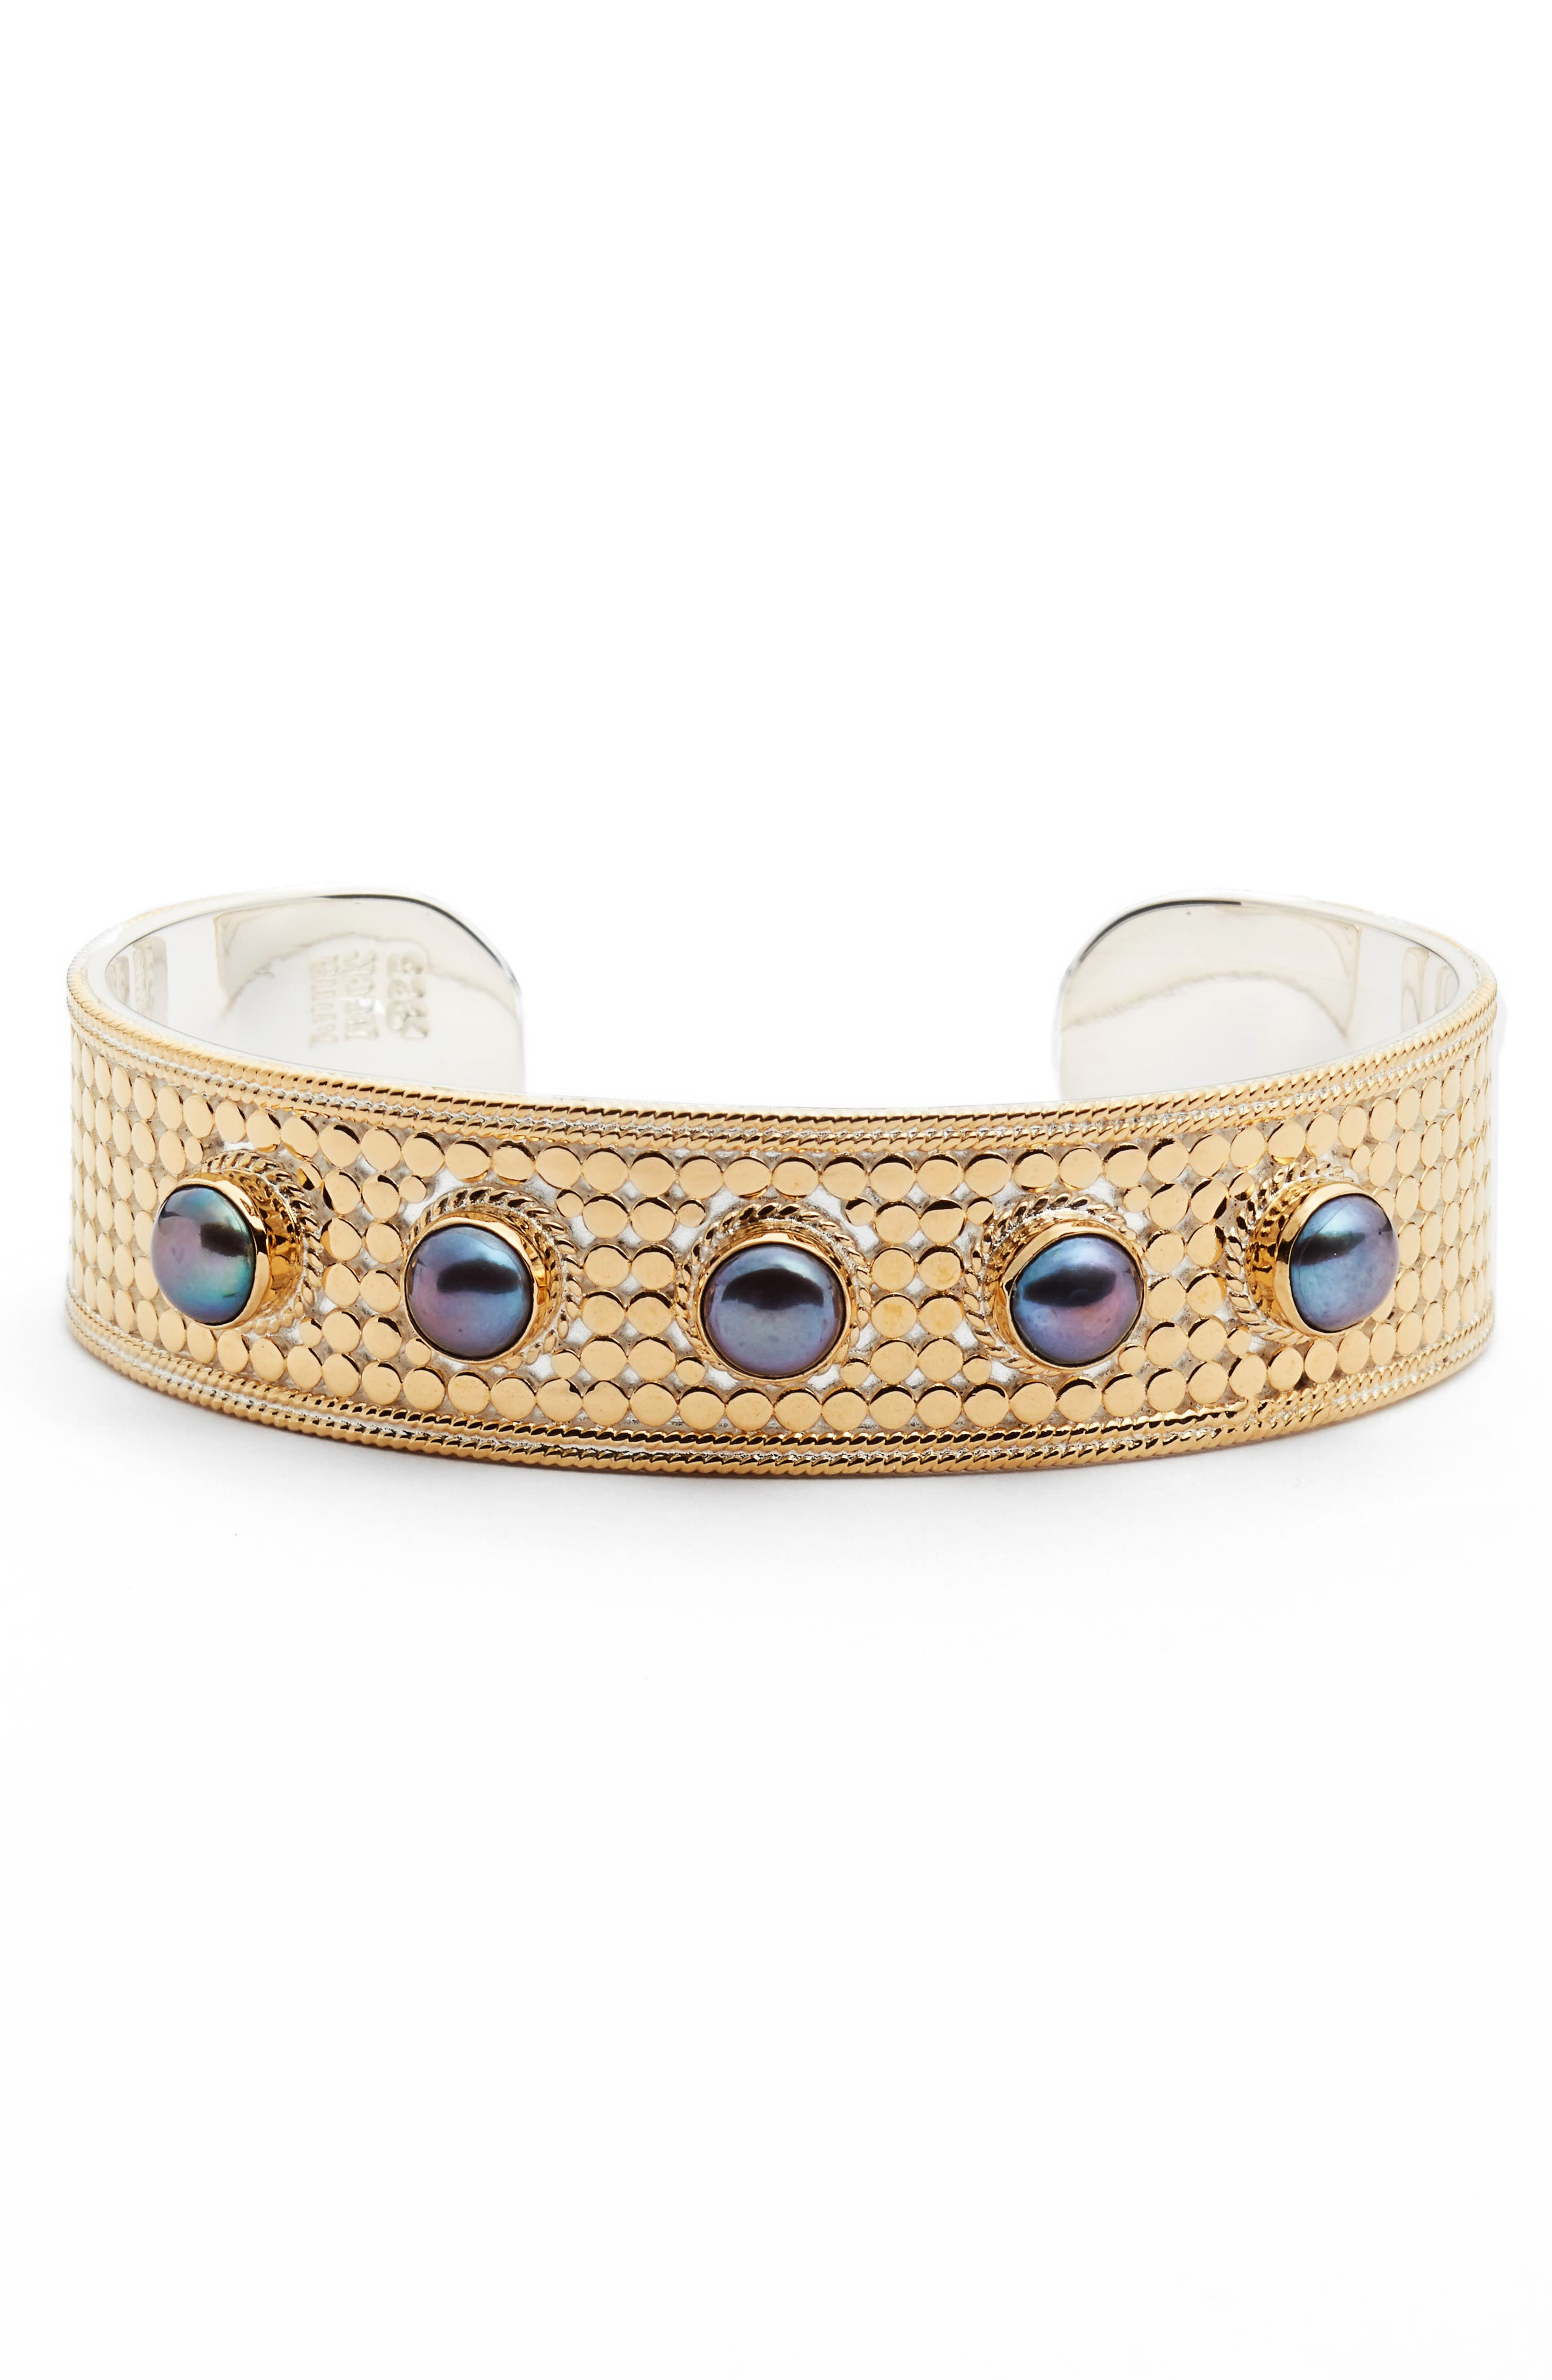 Genuine Blue Pearl Multistone Cuff,                             Main thumbnail 1, color,                             GOLD/ BLUE PEARL